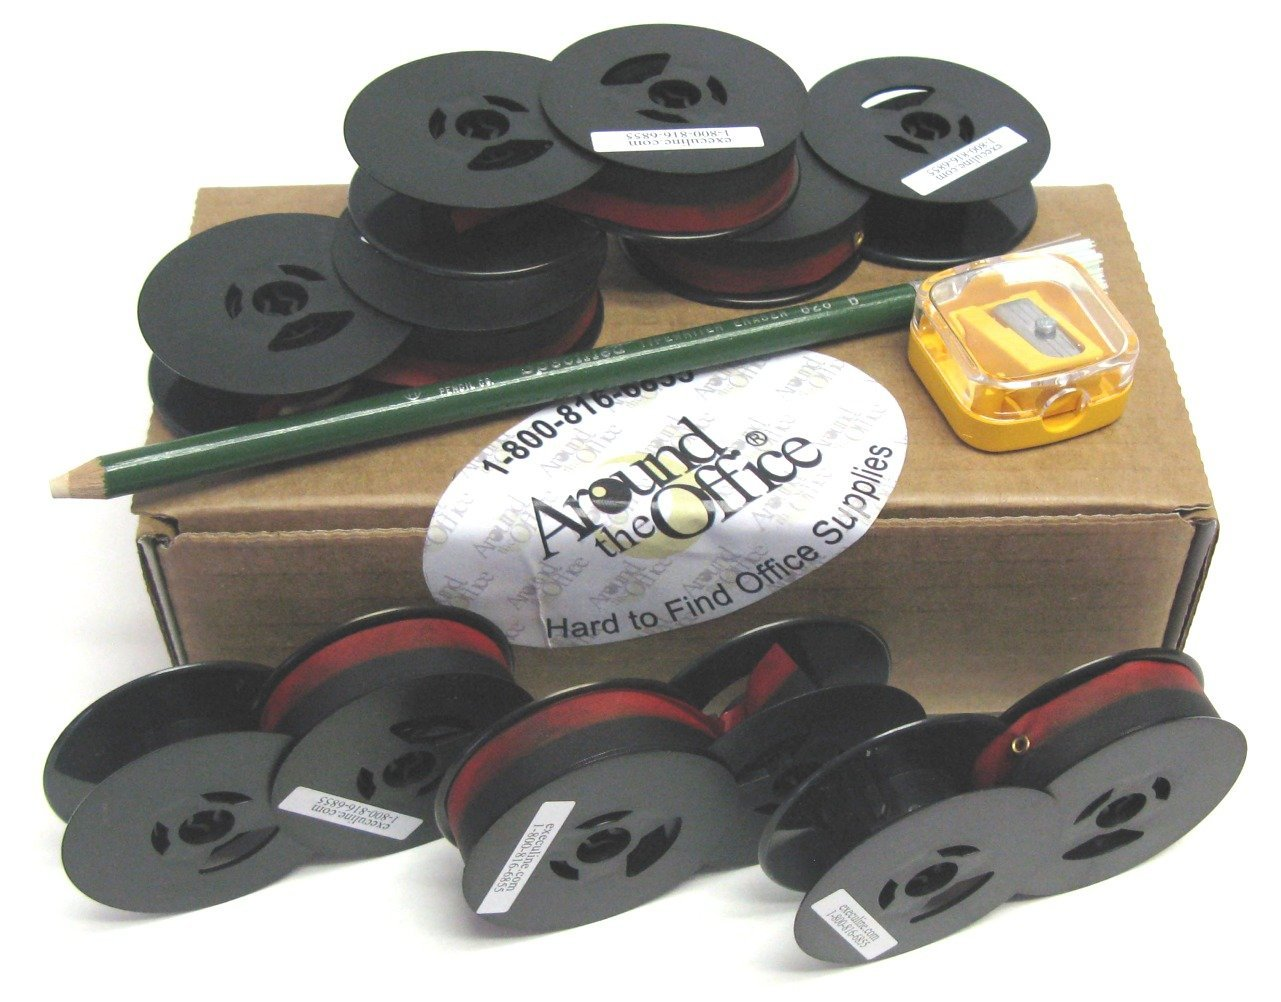 Universal Portable Typewriter Black 2 inch Twin Spool Black & Red Ribbon with 1 Eraser Stick & 1 Pencil Sharpener